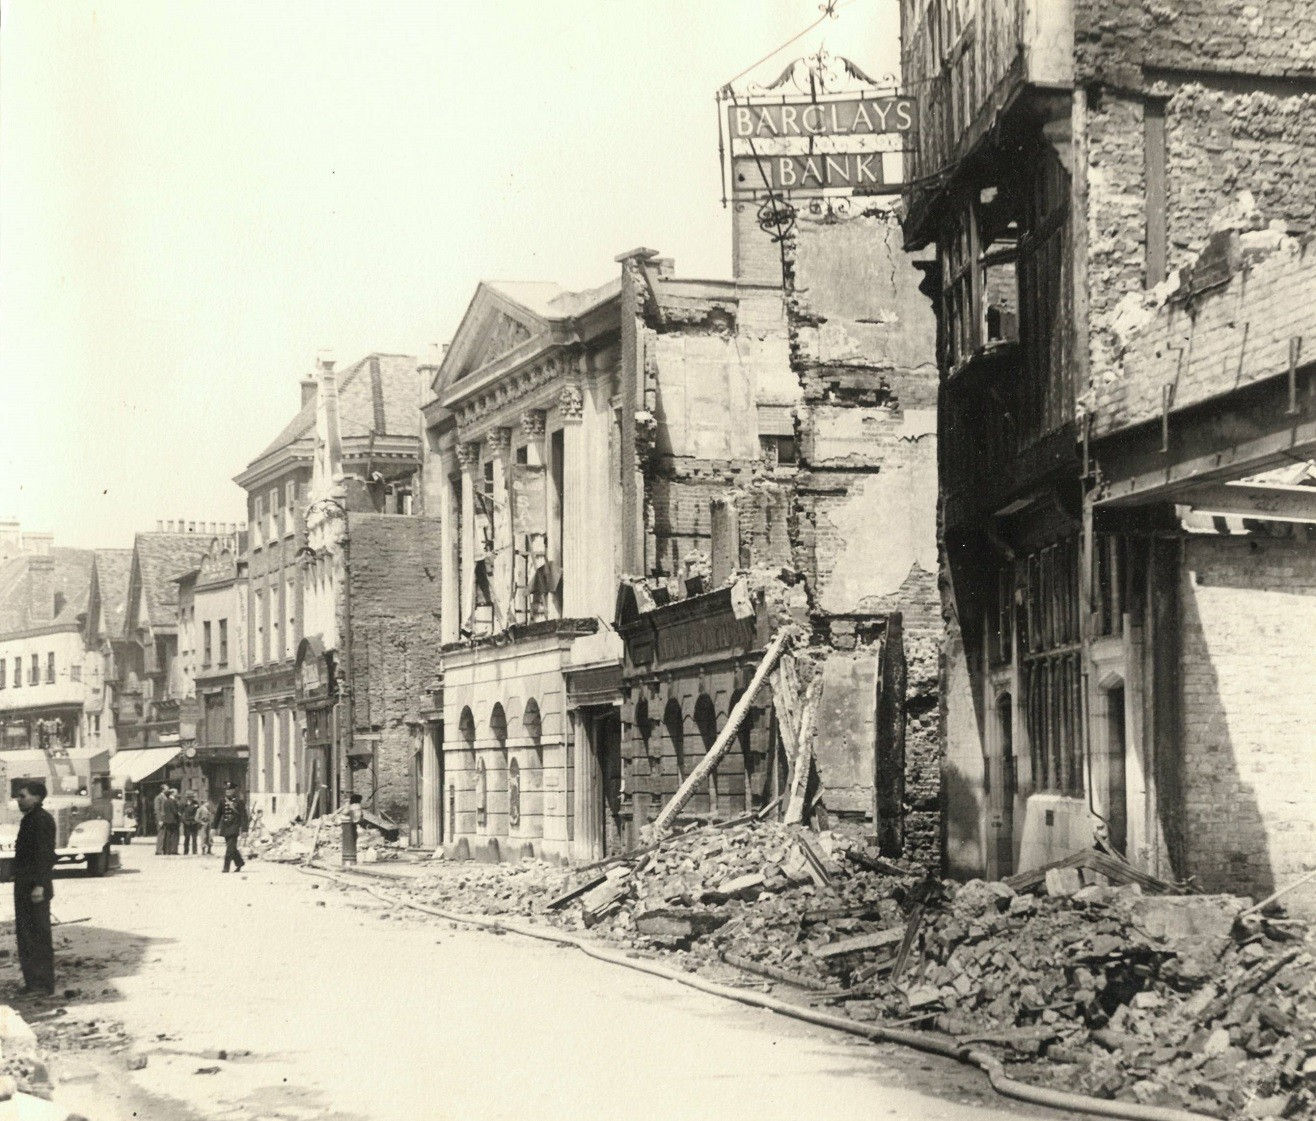 Barclays Canterbury branch during The Blitz